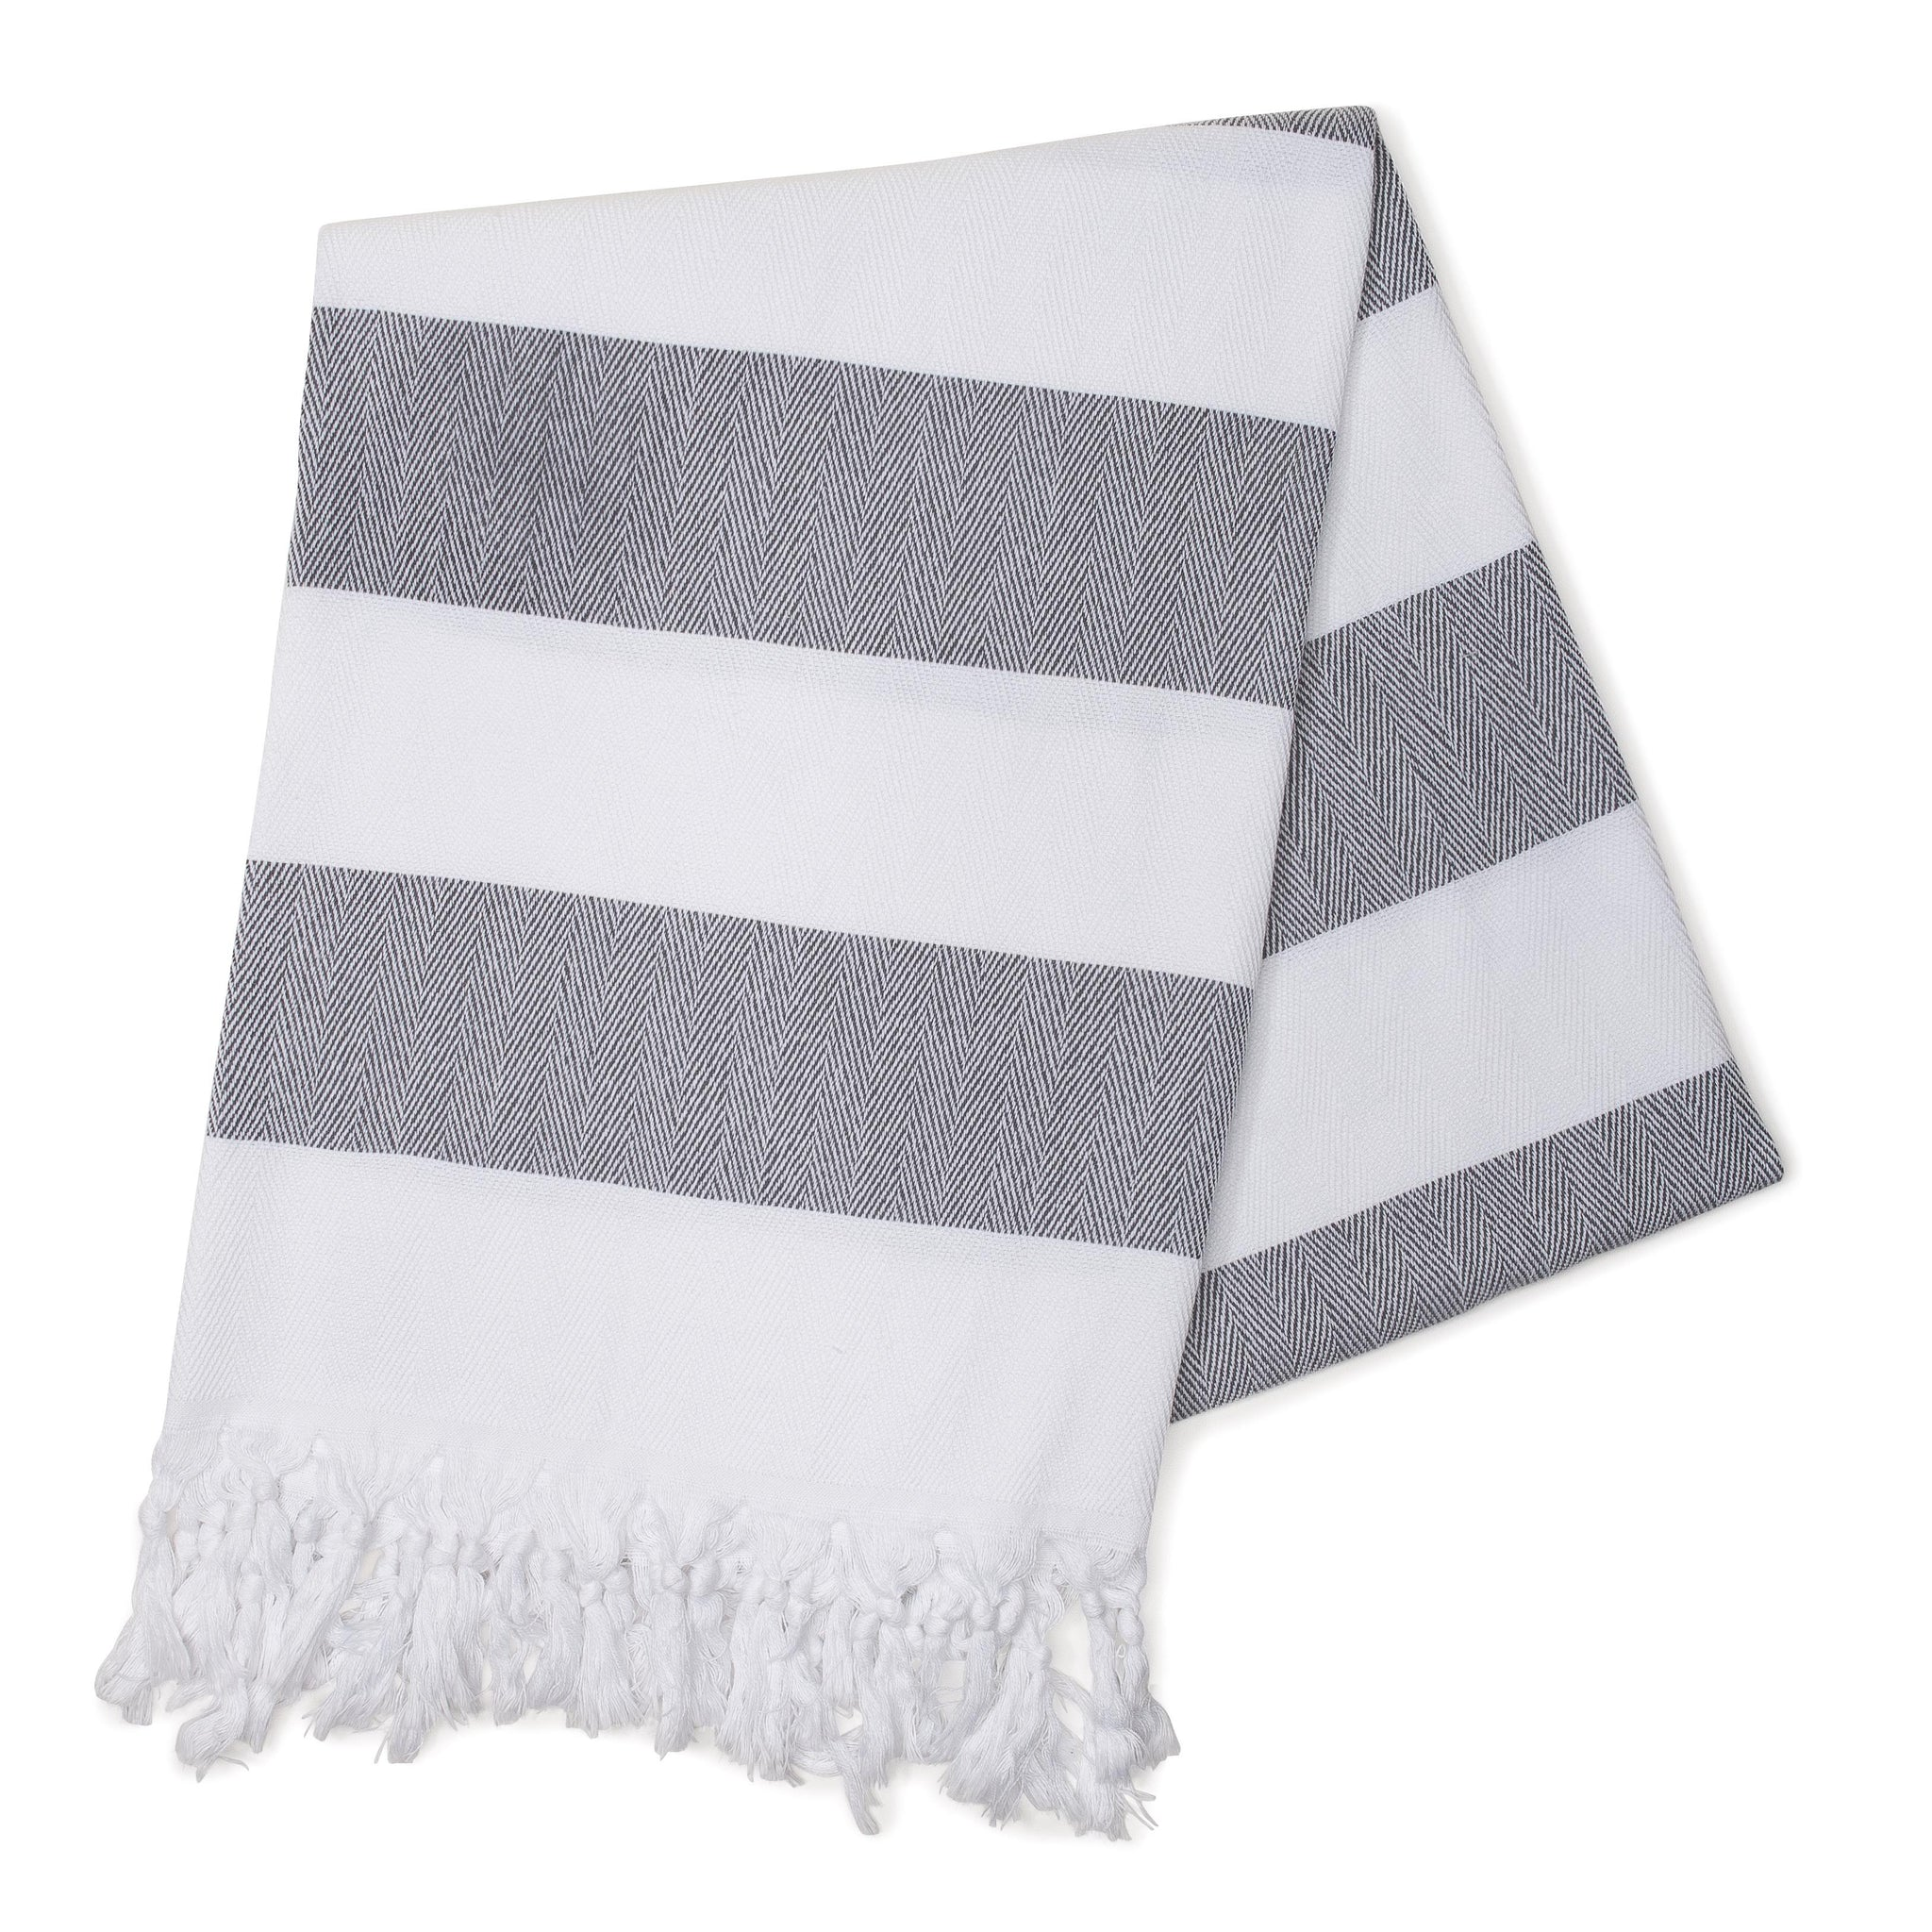 Charcoal Cabana Stripes Turkish Towel